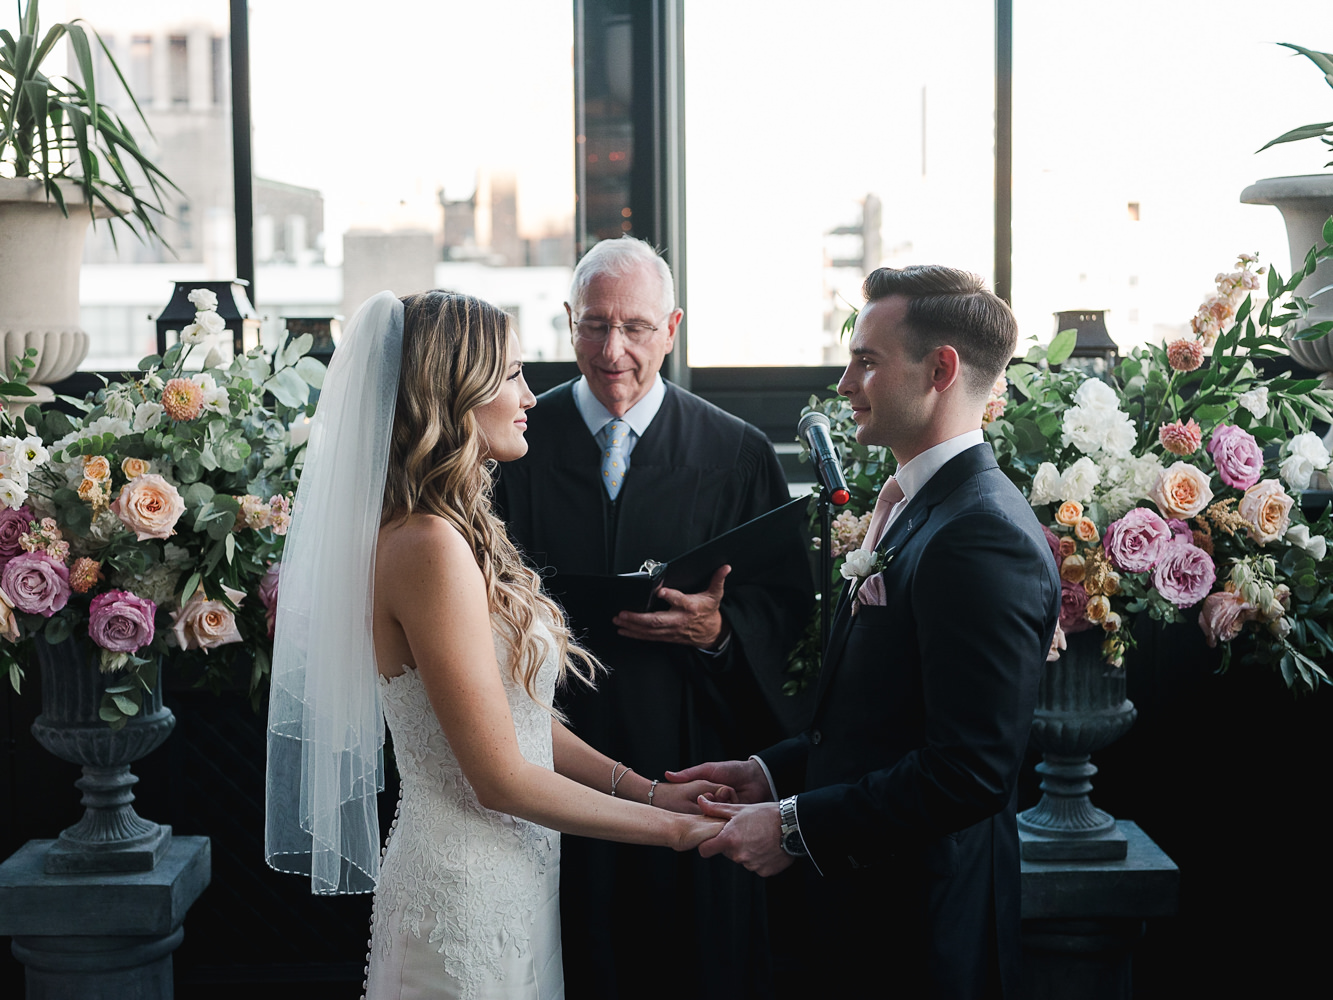 Gramercy-Park-Hotel-Wedding-New-York-Wedding-Photographer-28